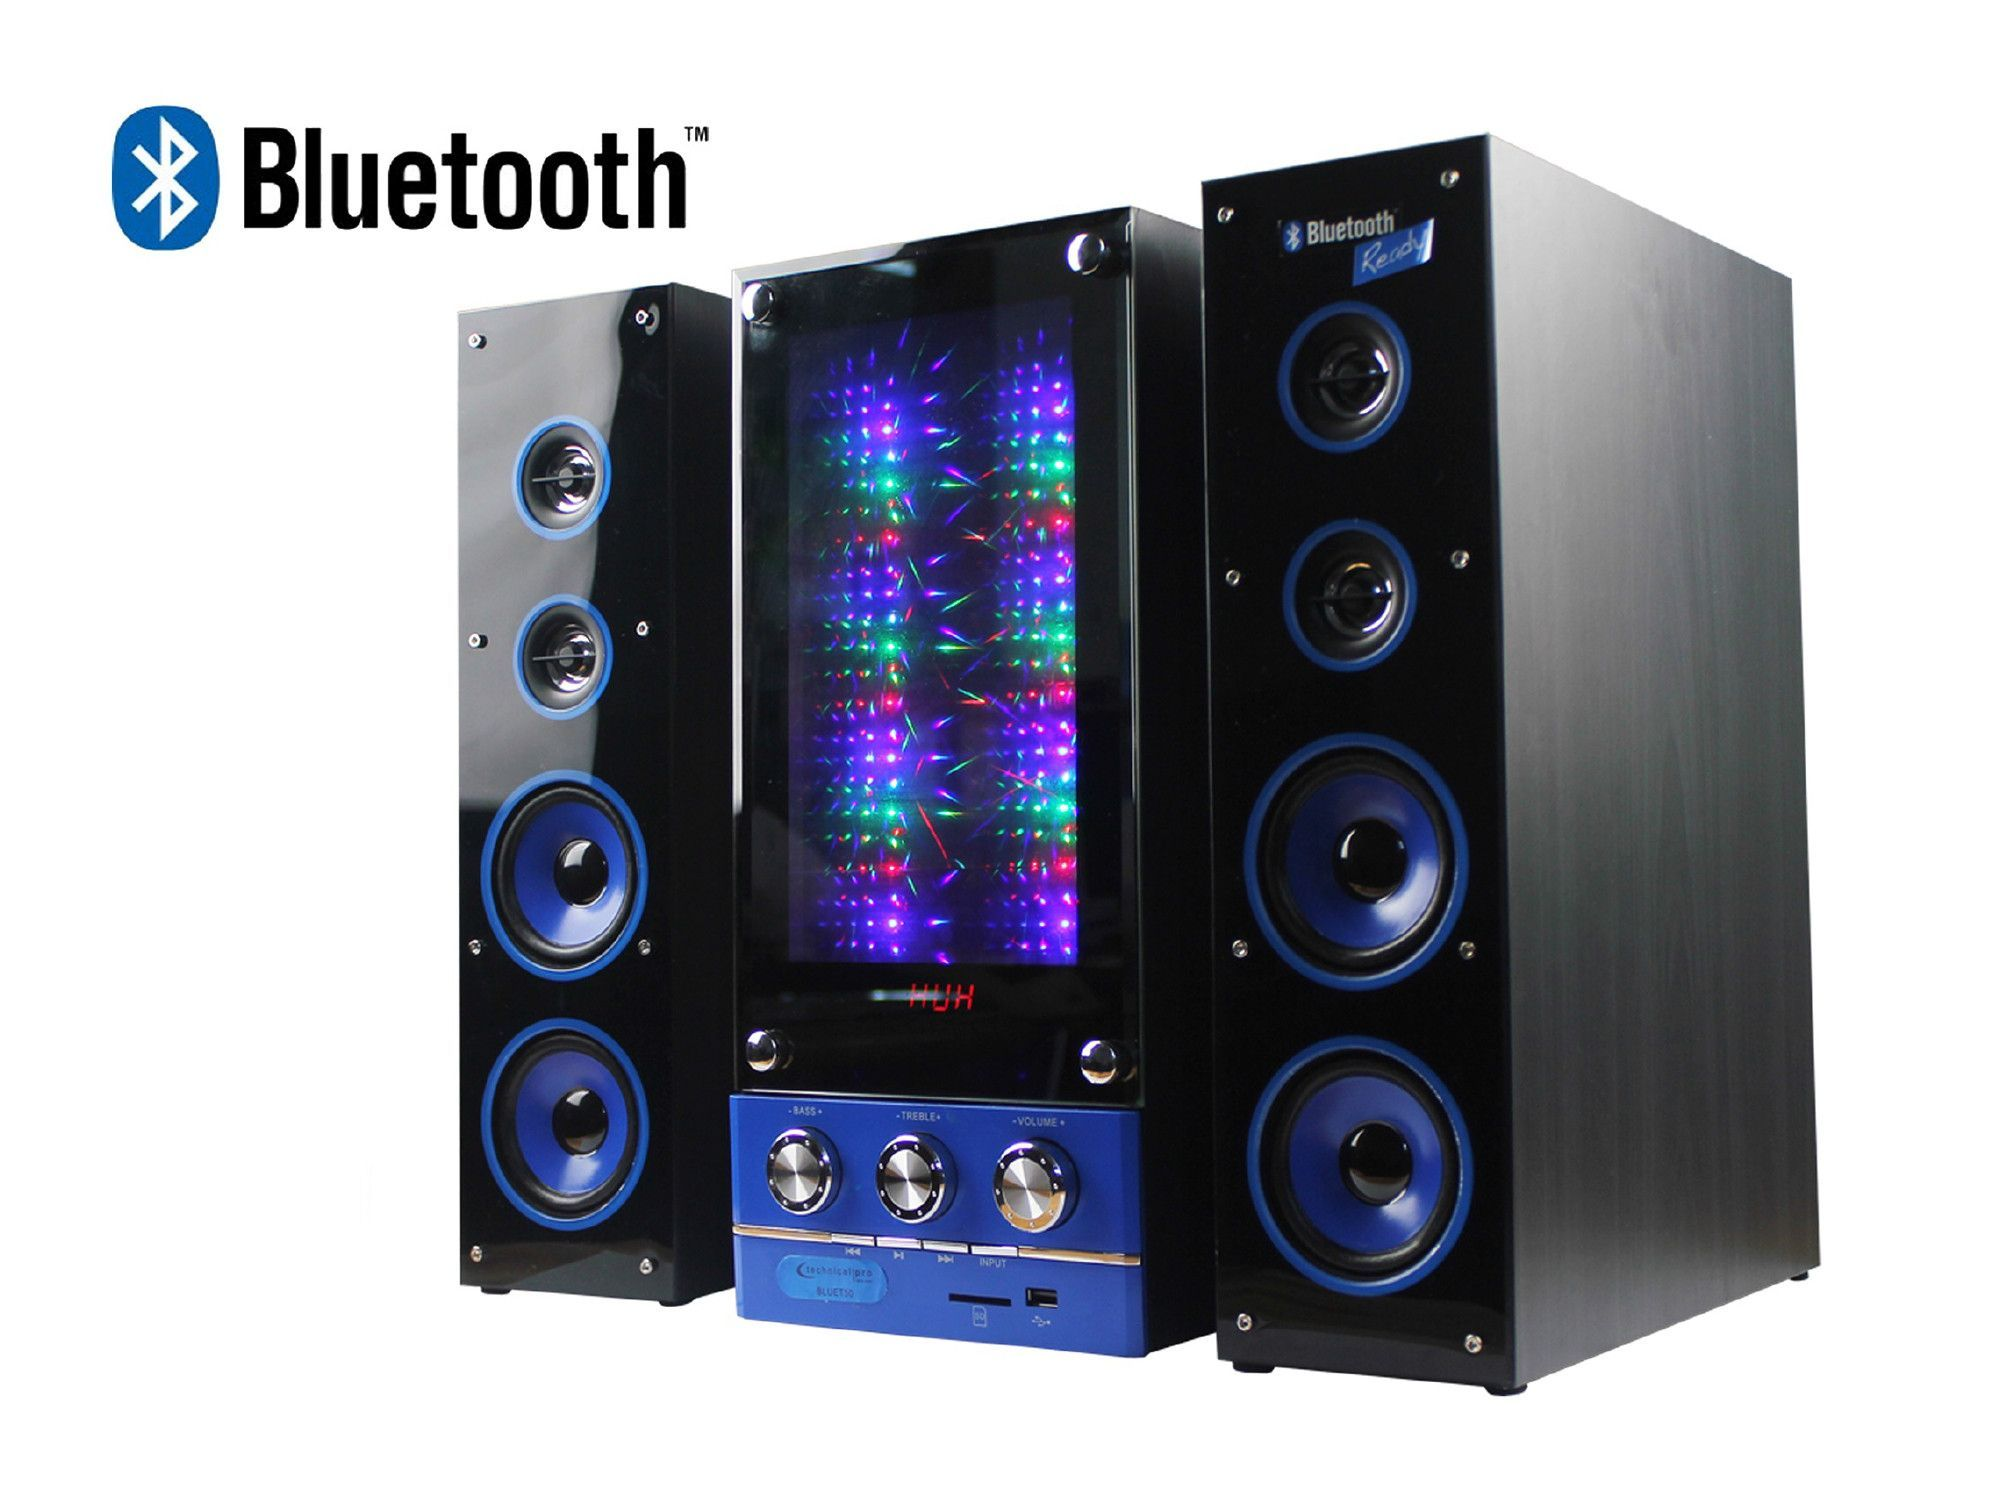 bf8f8bf596d2e12430ee5f132c75fe78 Top Result 50 New Loudest Portable Speakers